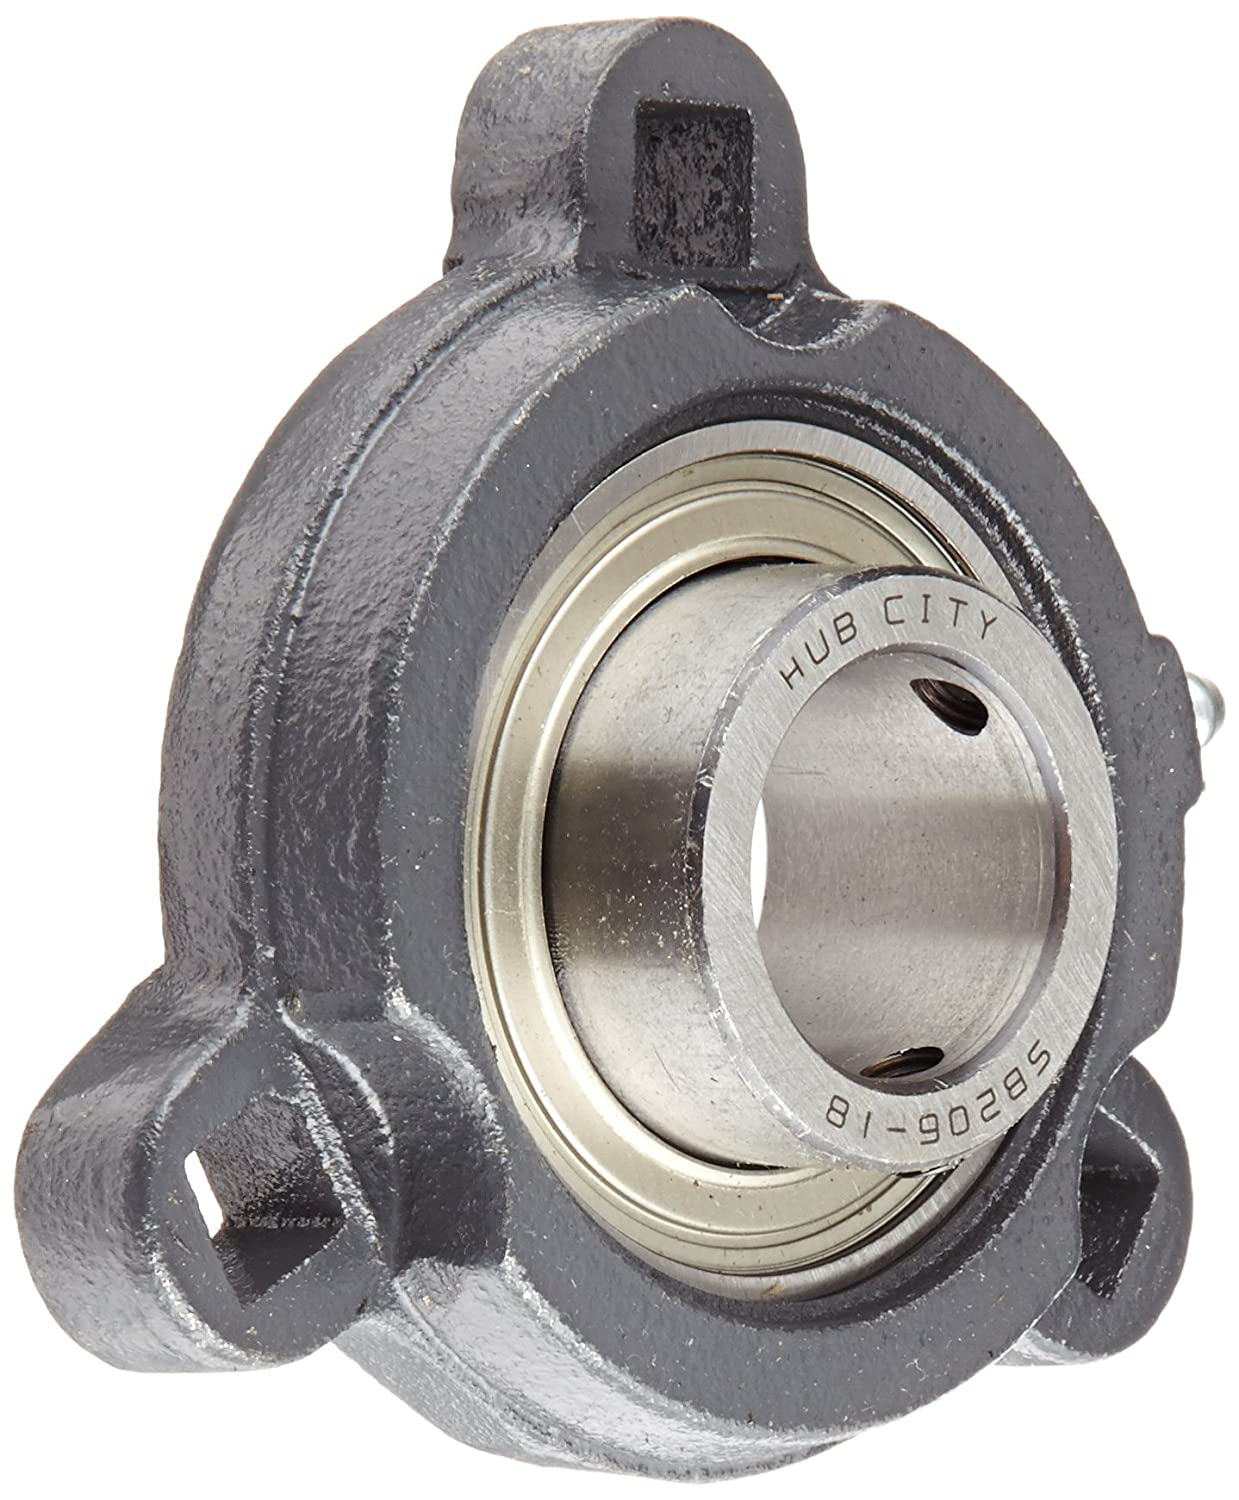 Hub City FB150URX1-1/8 Flange Block Mounted Bearing, 3 Bolt, Light Duty, Relube, Setscrew Locking Collar, Narrow Inner Race, Ductile Housing, 1-1/8' Bore, 1.56' Length Through Bore, 3.56' Mounting Hole Spacing 1-1/8 Bore 1.56 Length Through Bore